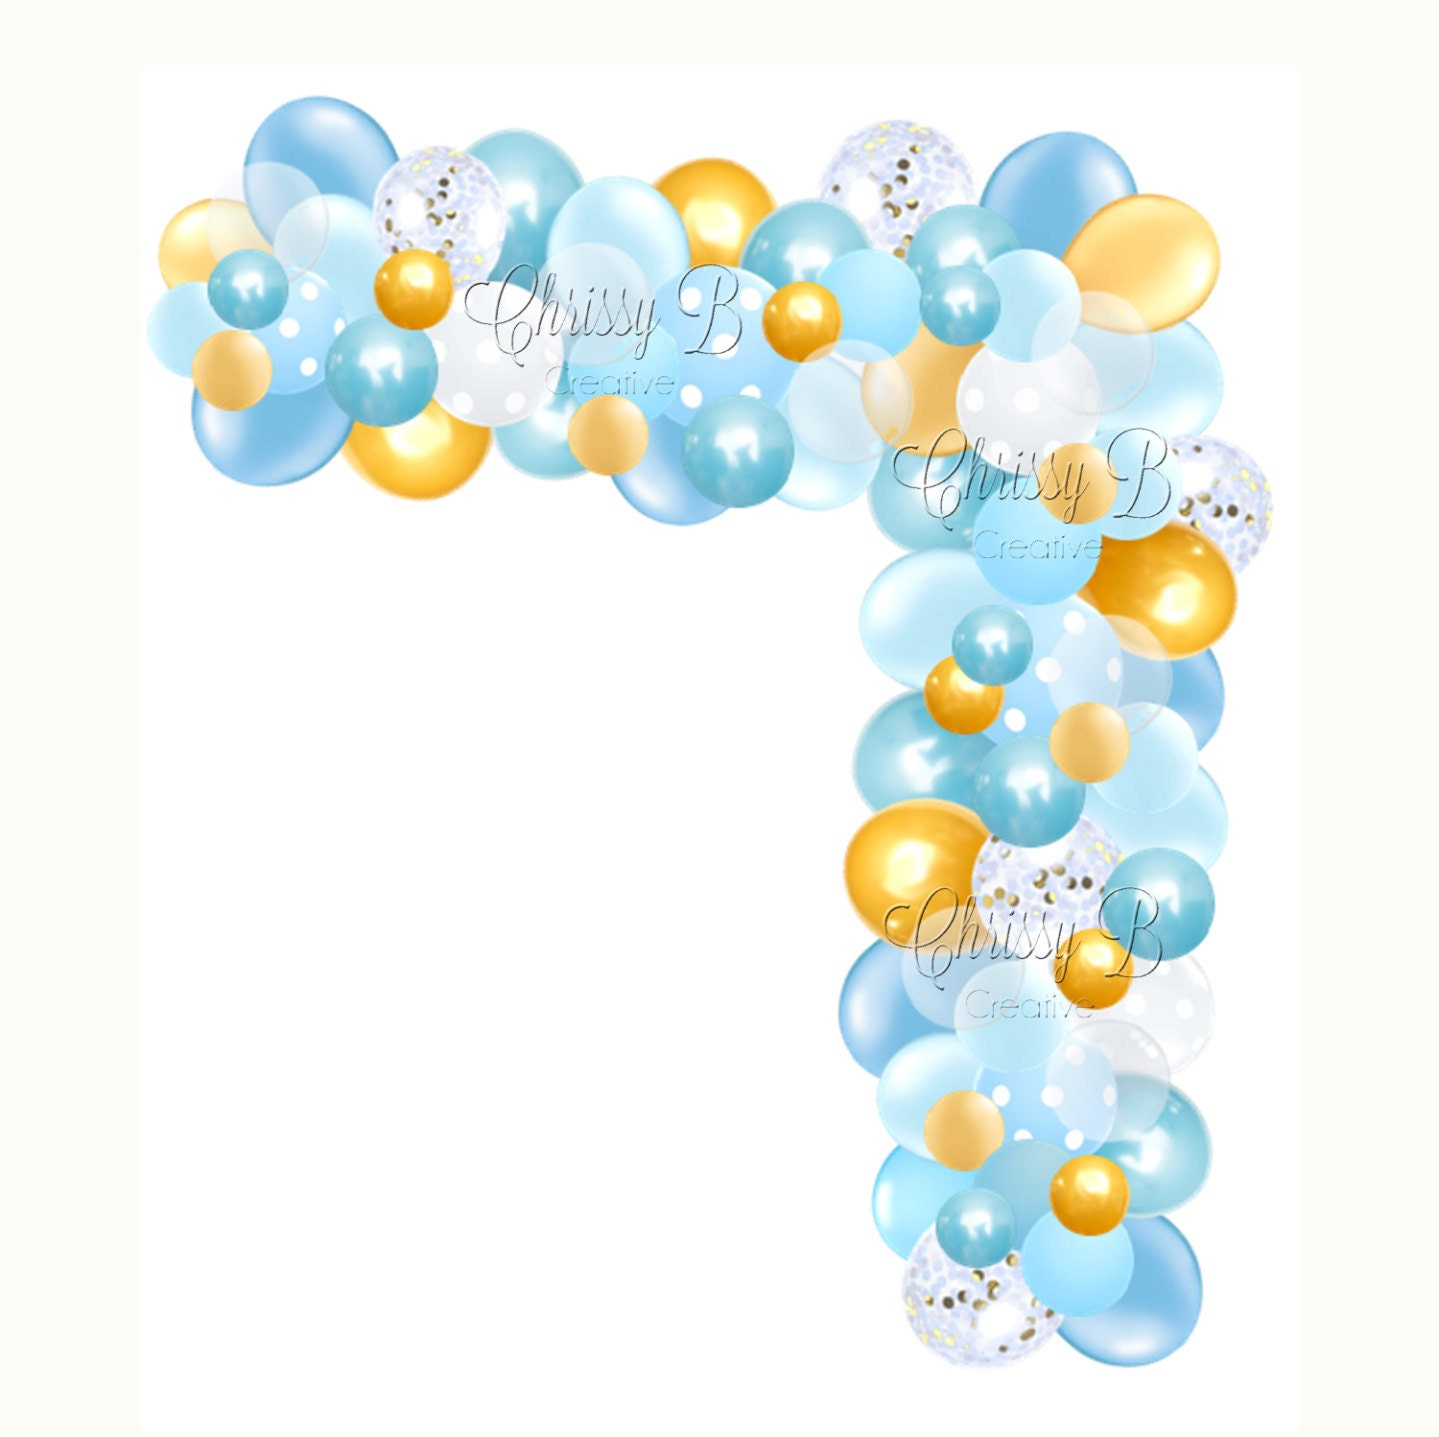 DIY Balloon Garland Kit In Blue And Gold Makes A Full 12